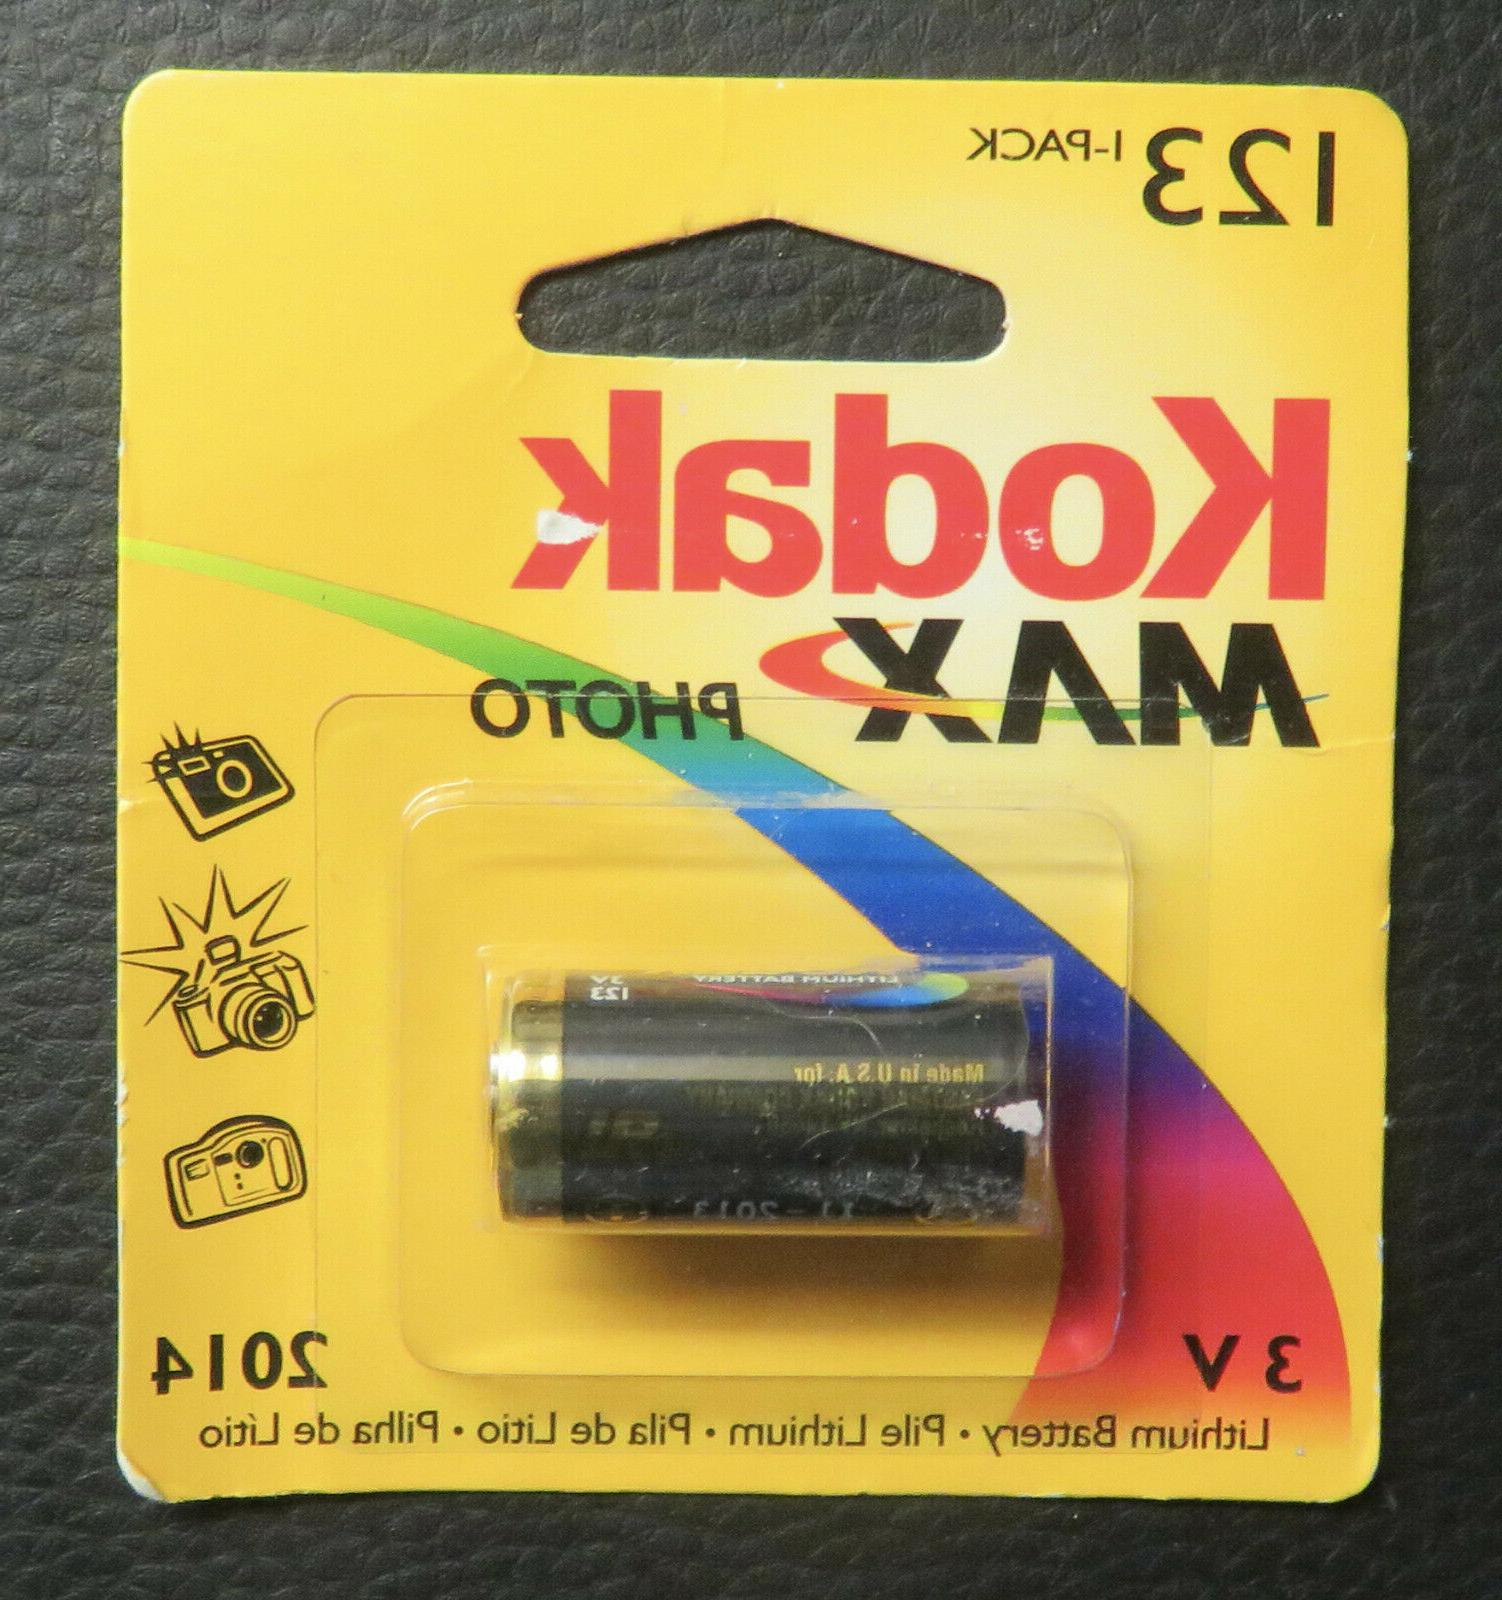 lot of 15 max photo123 lithium battery